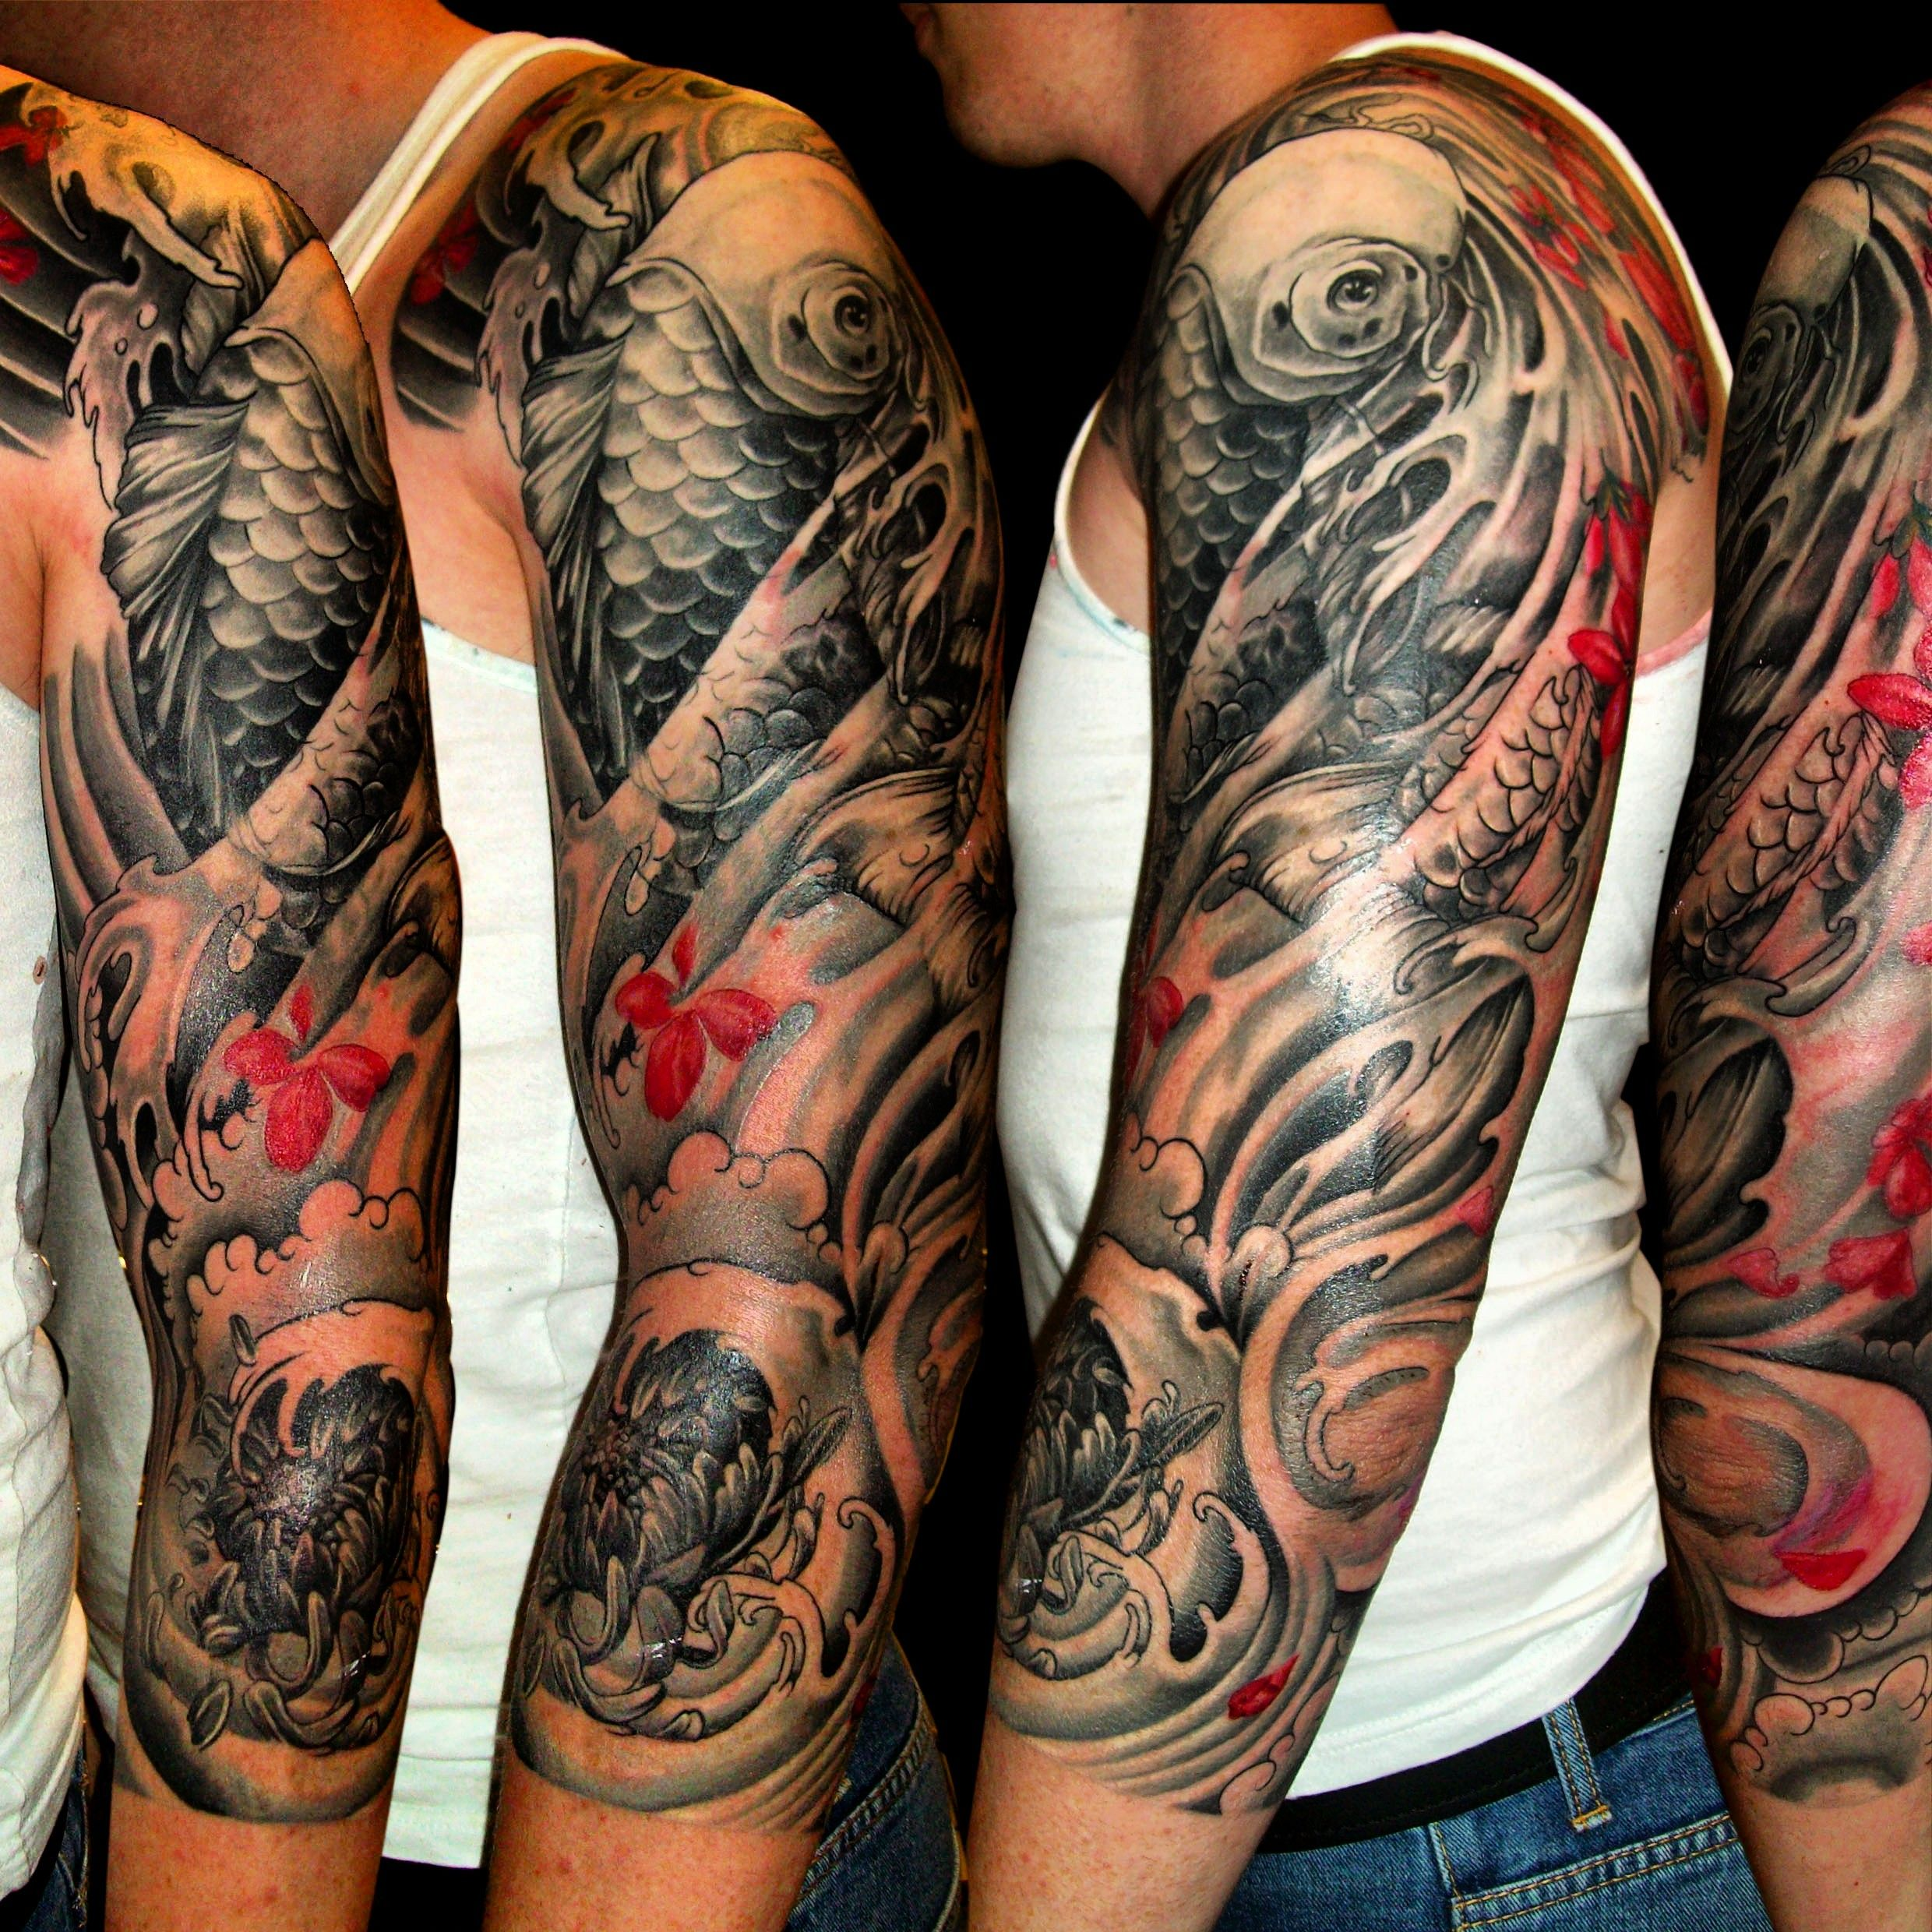 50 meaningful tattoo ideas art and design - Mens Japanese Flower Sleeve Tattoos Dragon In Place Of The Koi Tattoos Pictures Tattoo Ideas